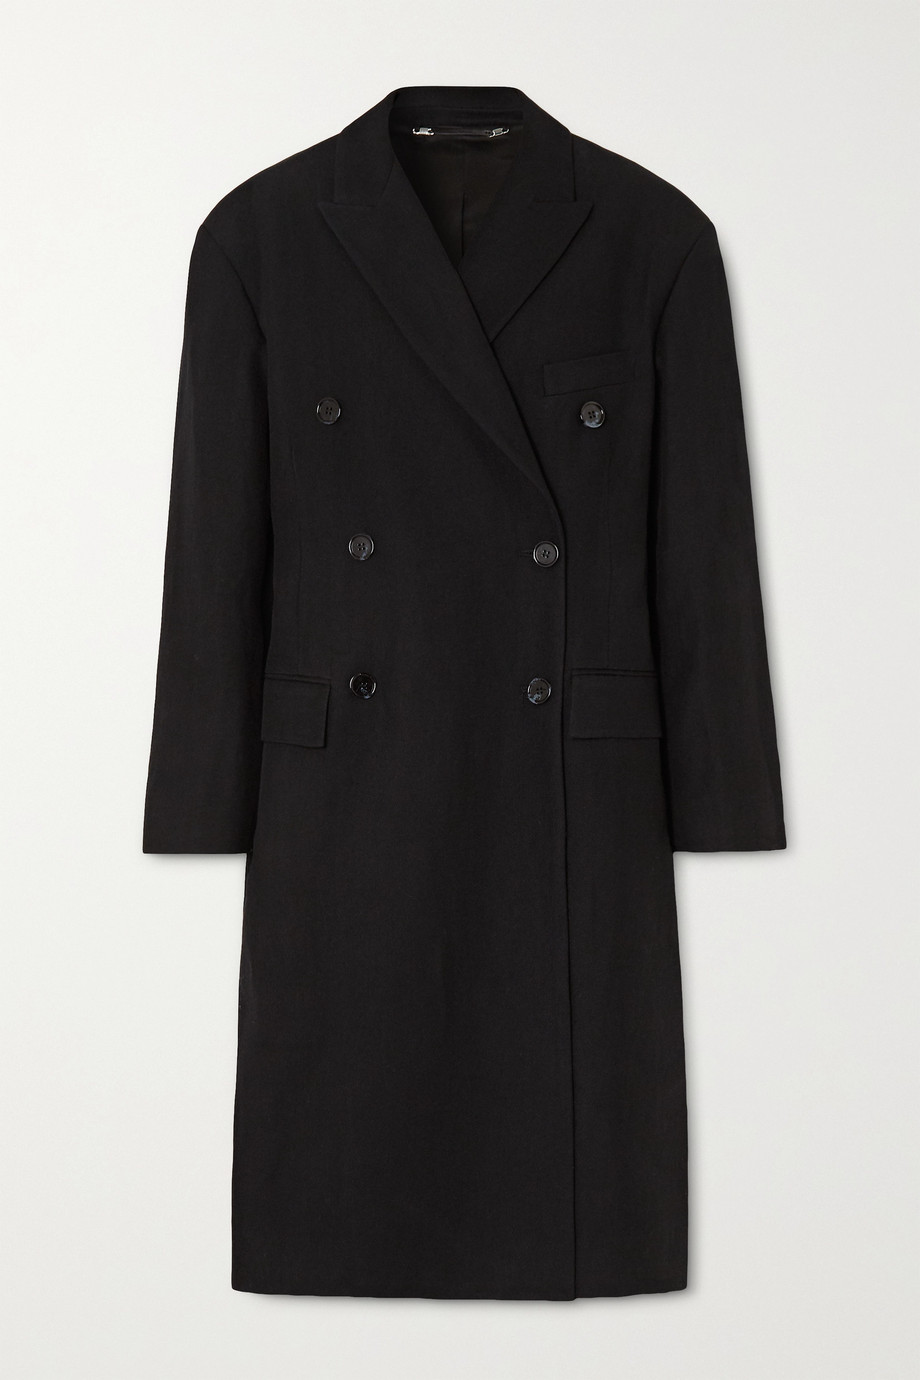 Acne Studios Oversized double-breasted linen and wool-blend twill coat